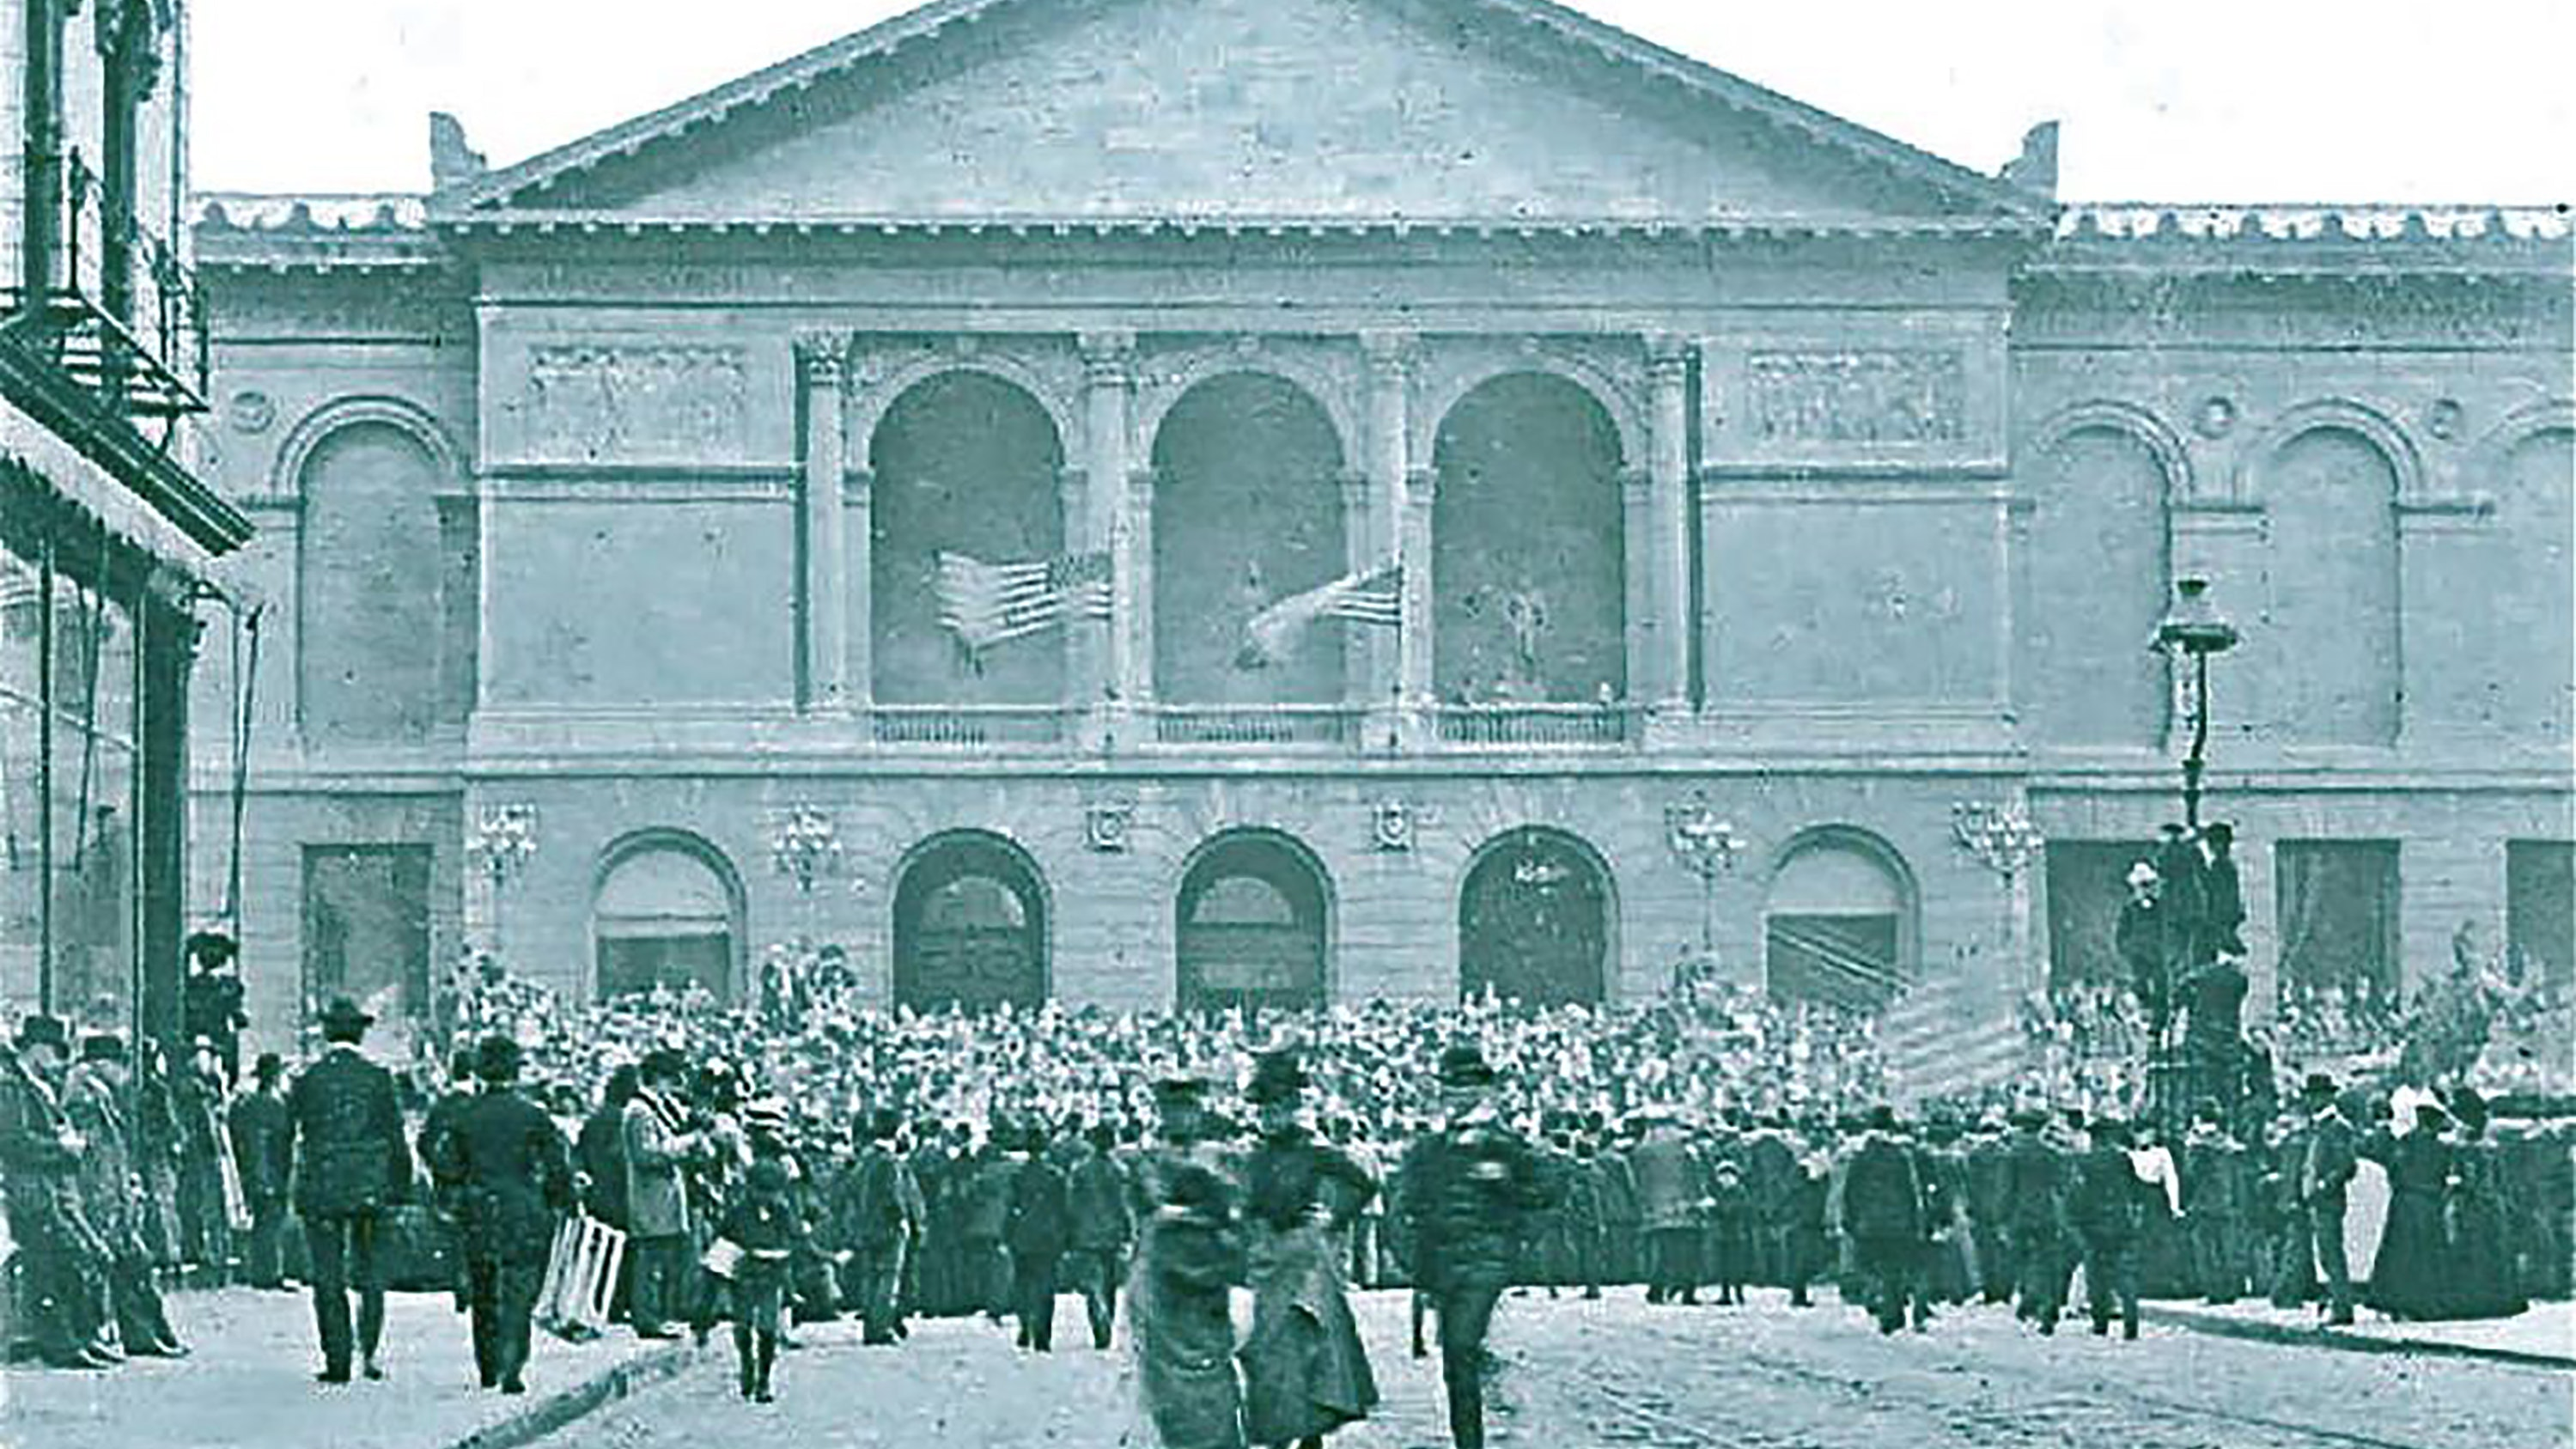 Opening Day 1893